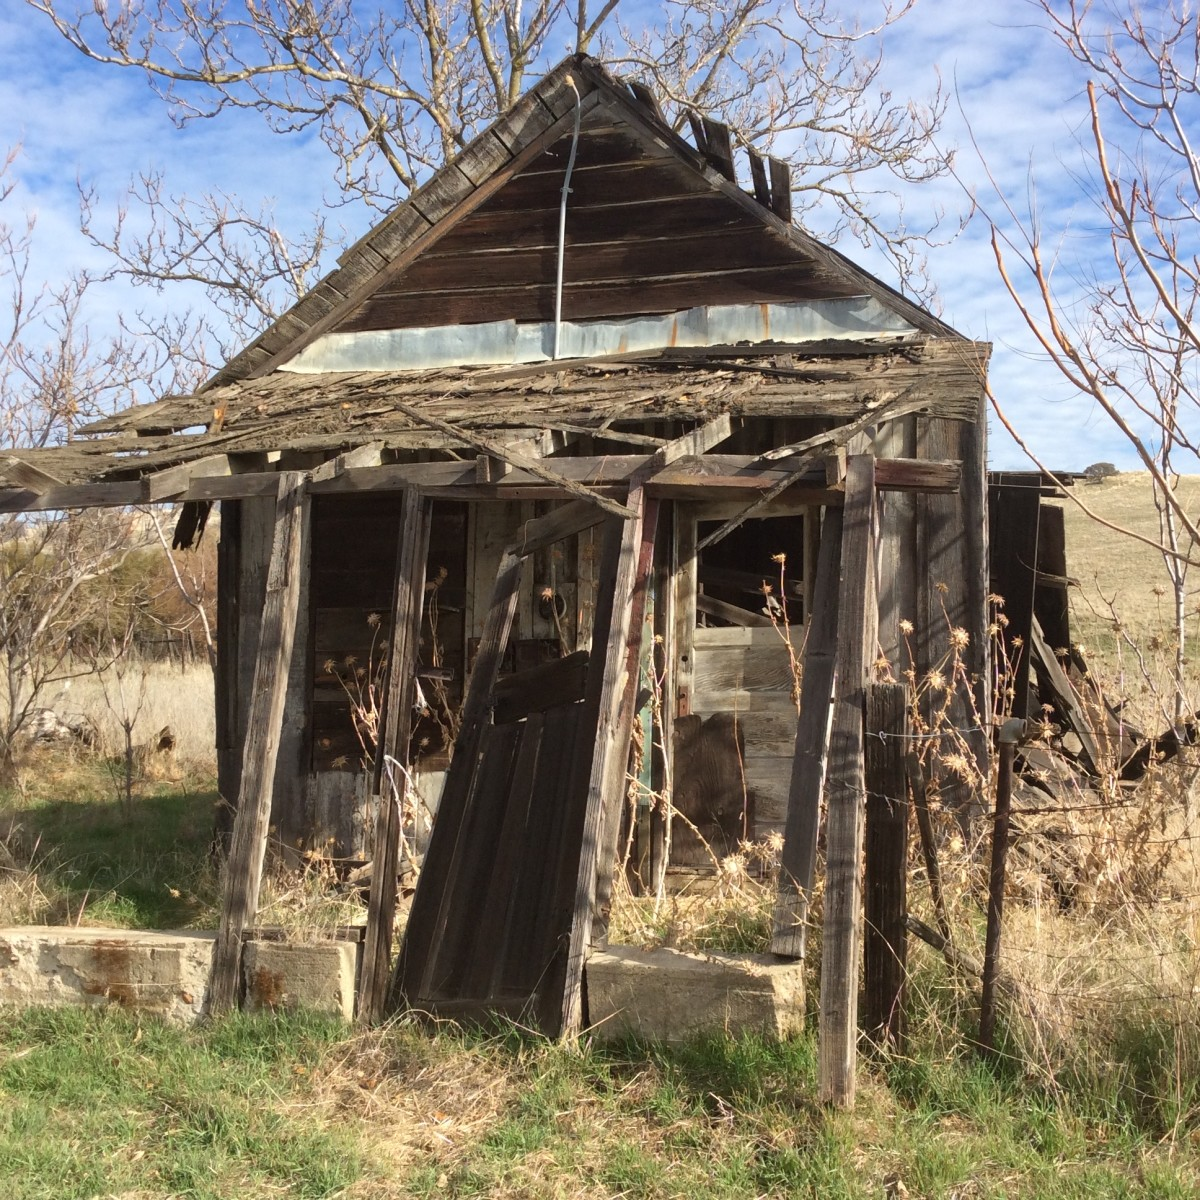 Wooden buildings and shacks exist in a state of arrested decay and add to the ghost town aura of Hornitos. If spirits remain, this house seems to be available for occupancy.